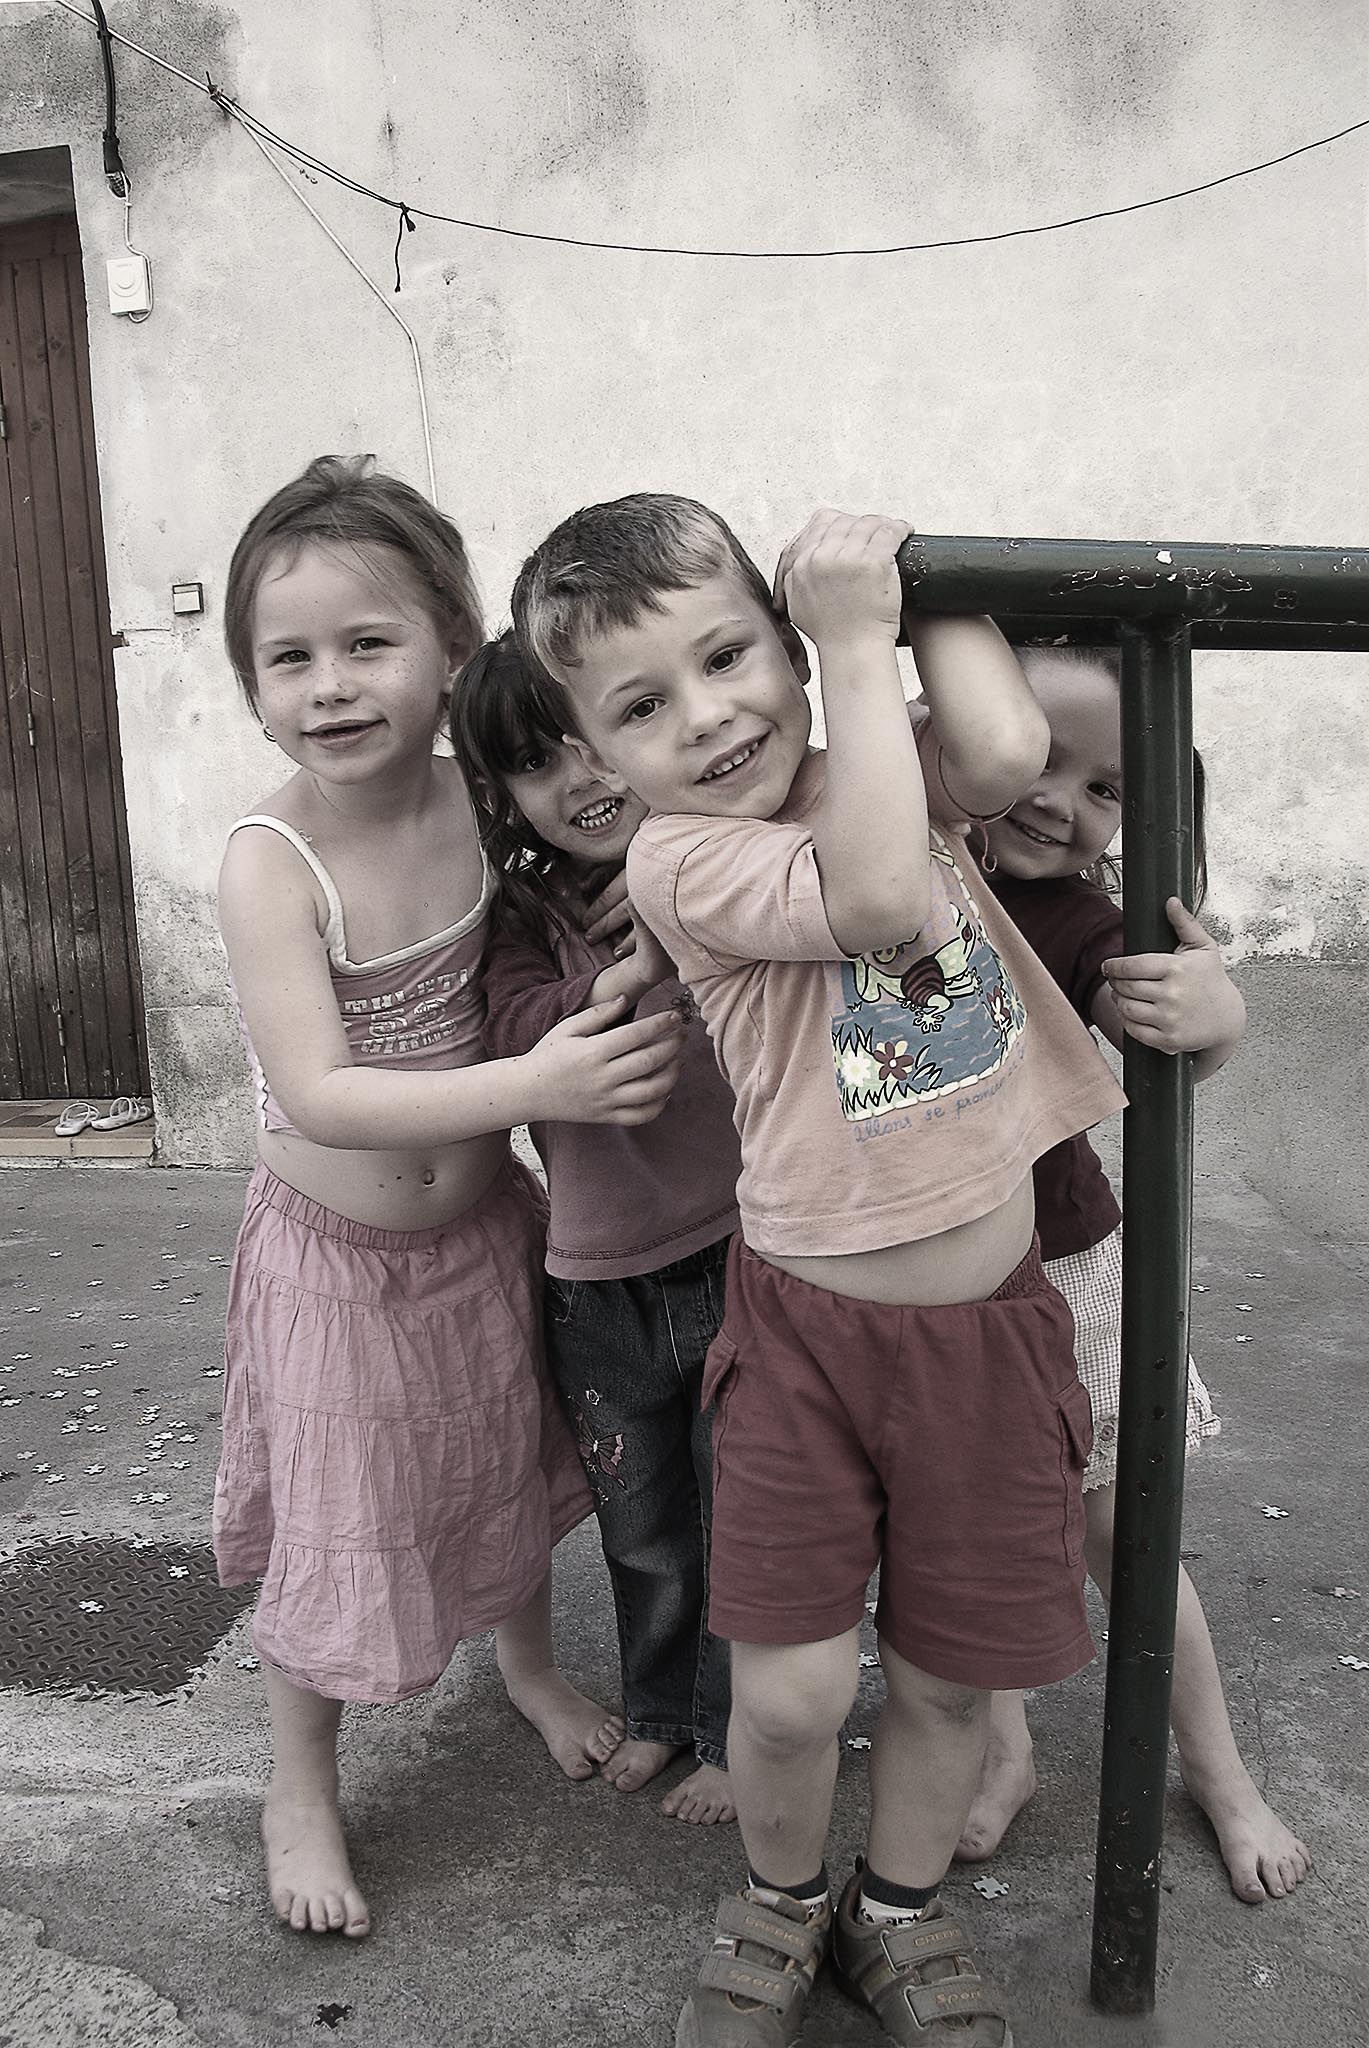 Melinda Isachsen JANIS Photography & Fine Art children playing Provence France